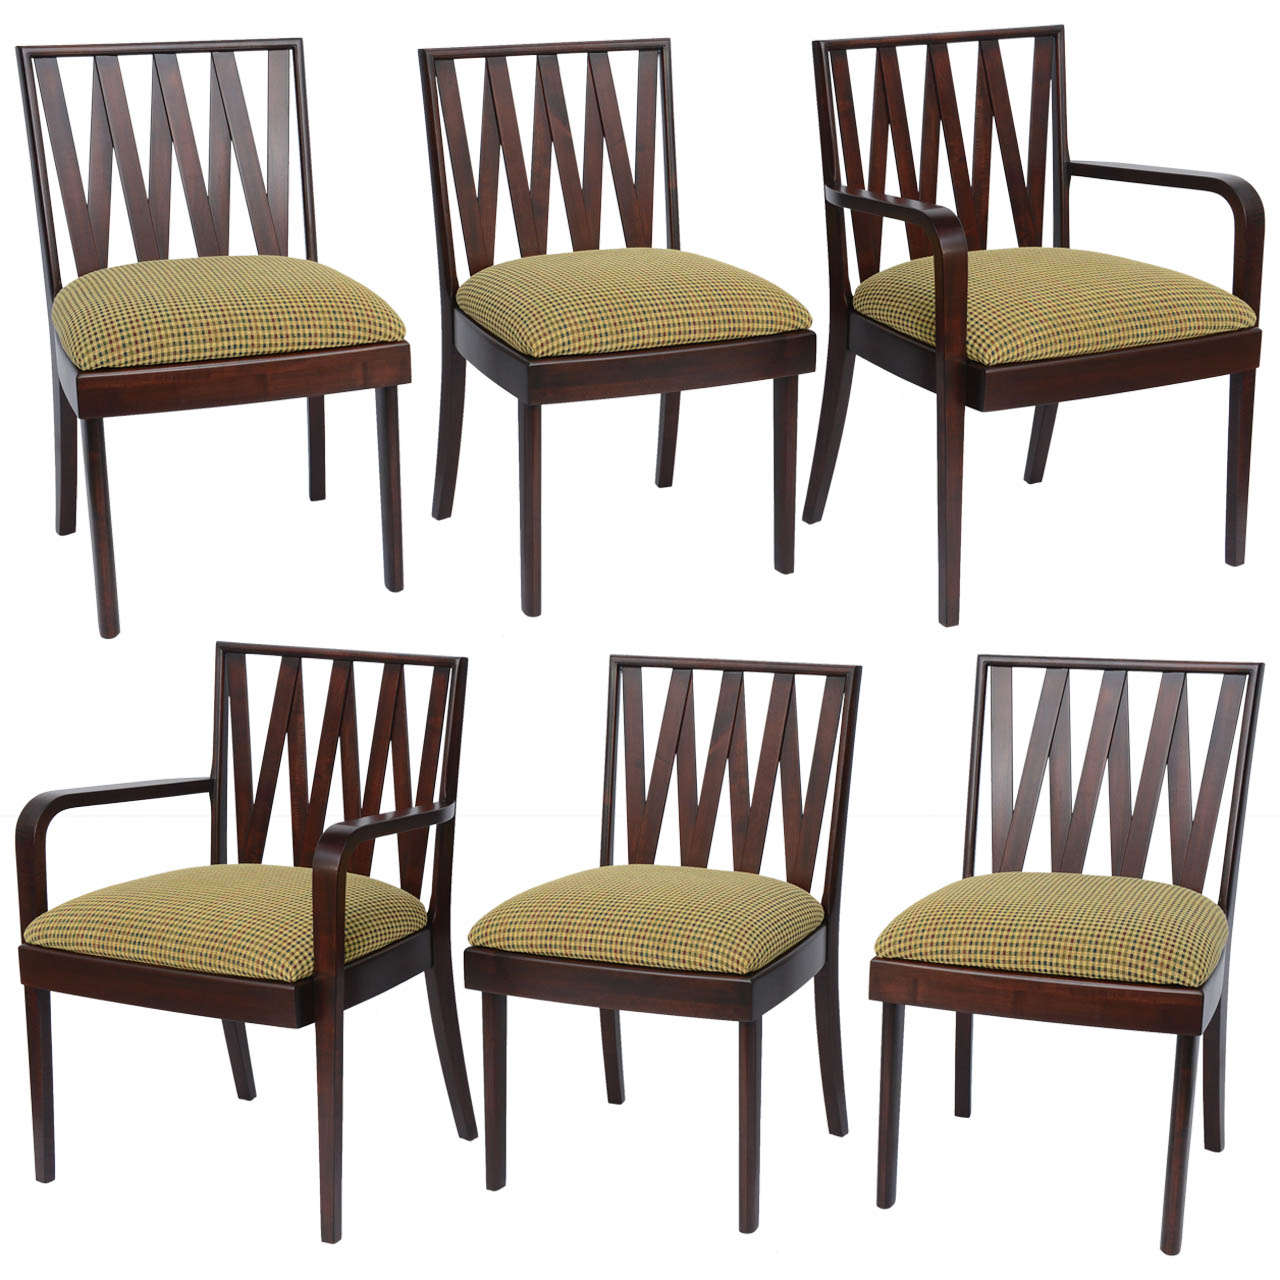 Classic 1940s Paul Frankl Dining Chairs For Johnson Furniture